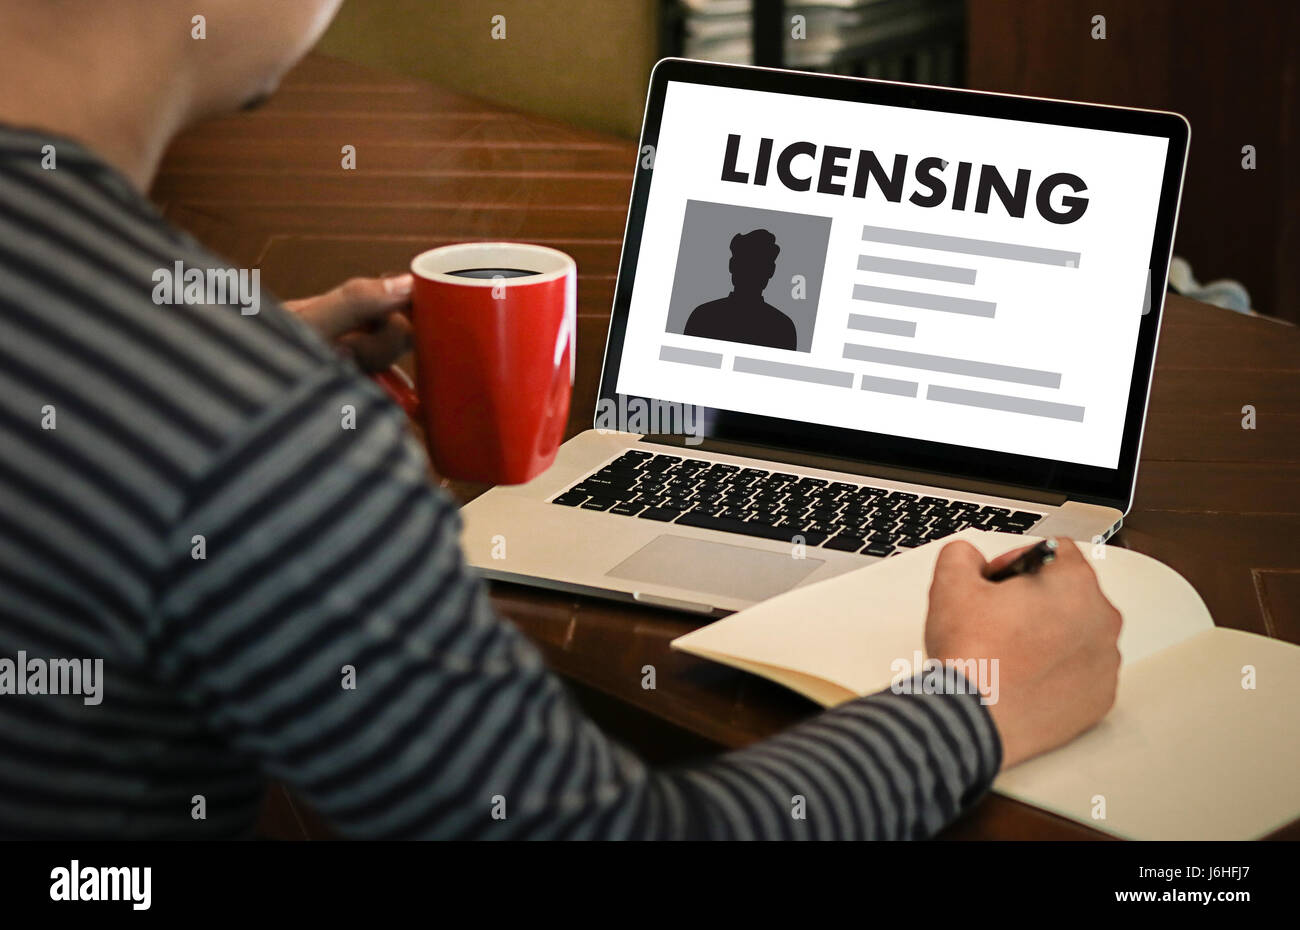 Patent Licensing Agreement Stock Photos Patent Licensing Agreement